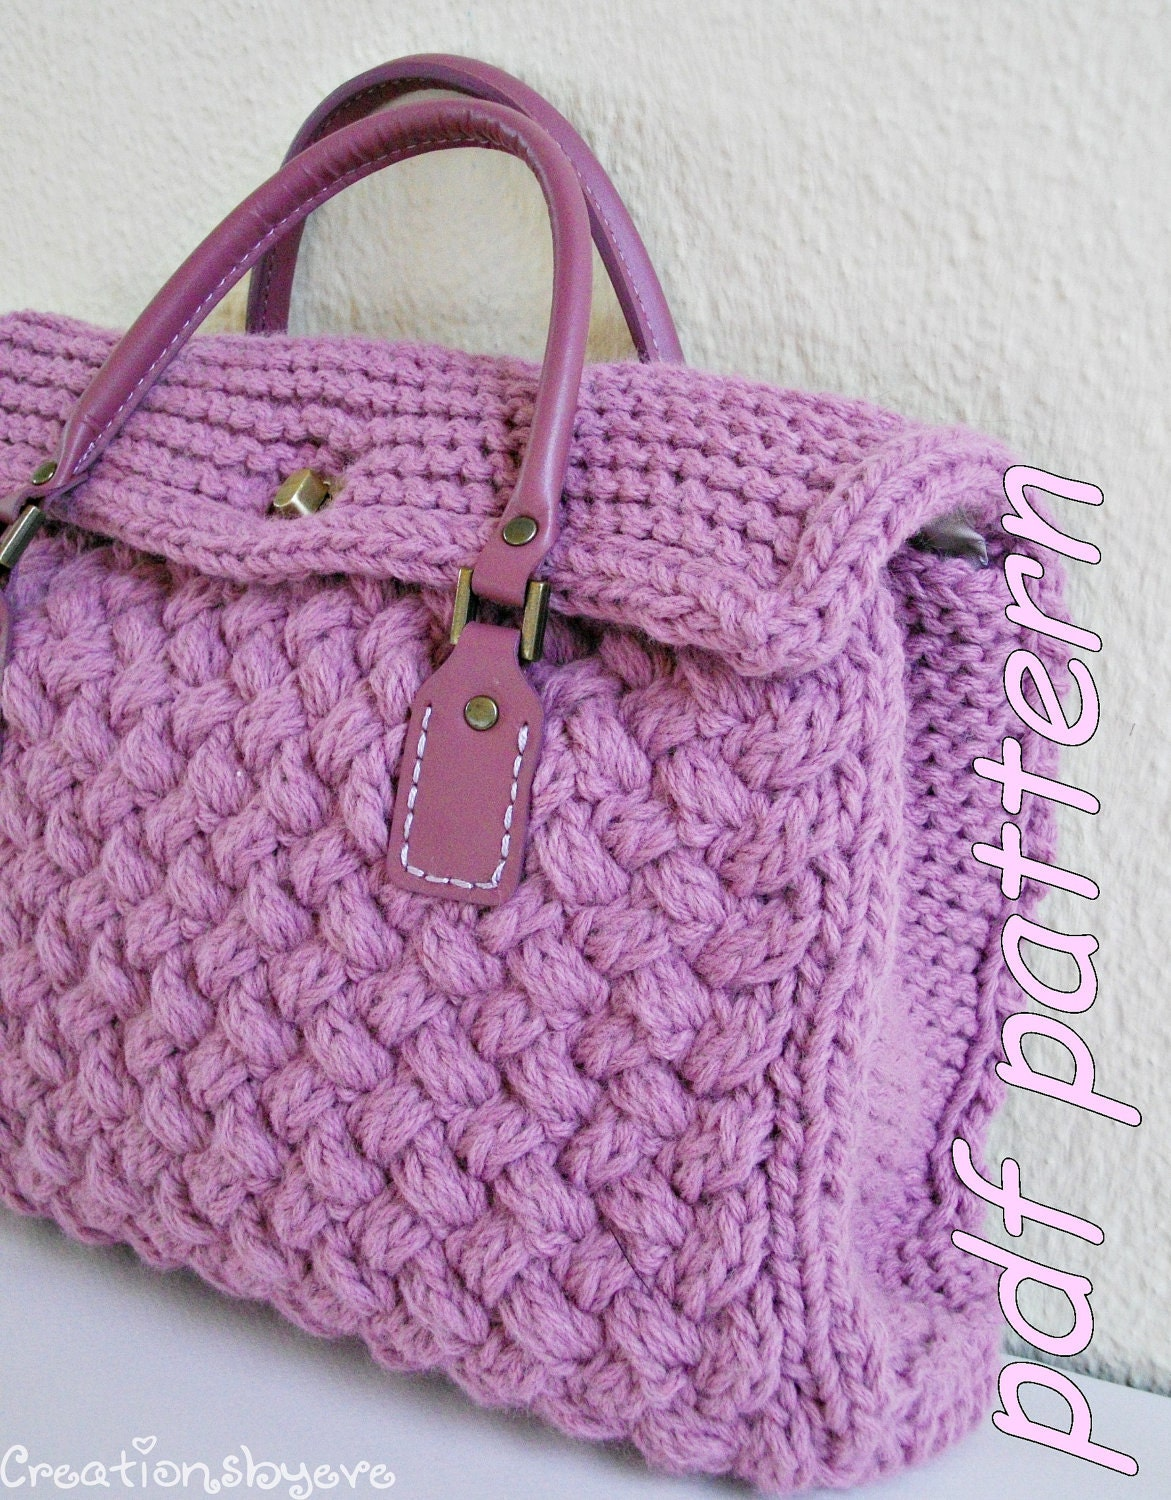 Stylish small textured hand-knit bag PDF pattern